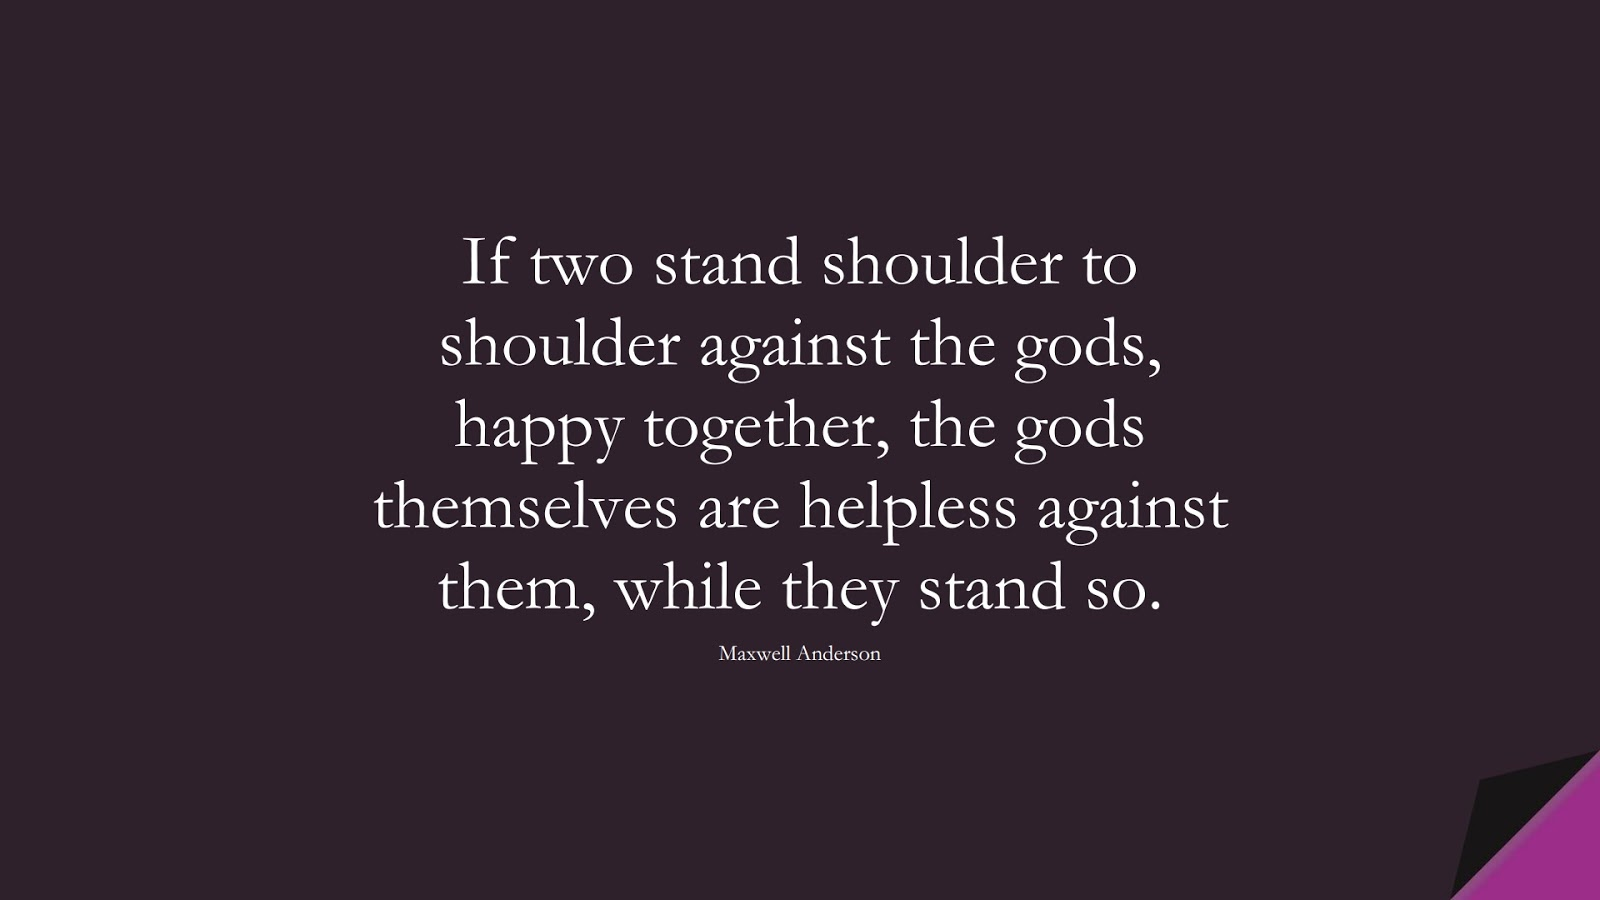 If two stand shoulder to shoulder against the gods, happy together, the gods themselves are helpless against them, while they stand so. (Maxwell Anderson);  #RelationshipQuotes